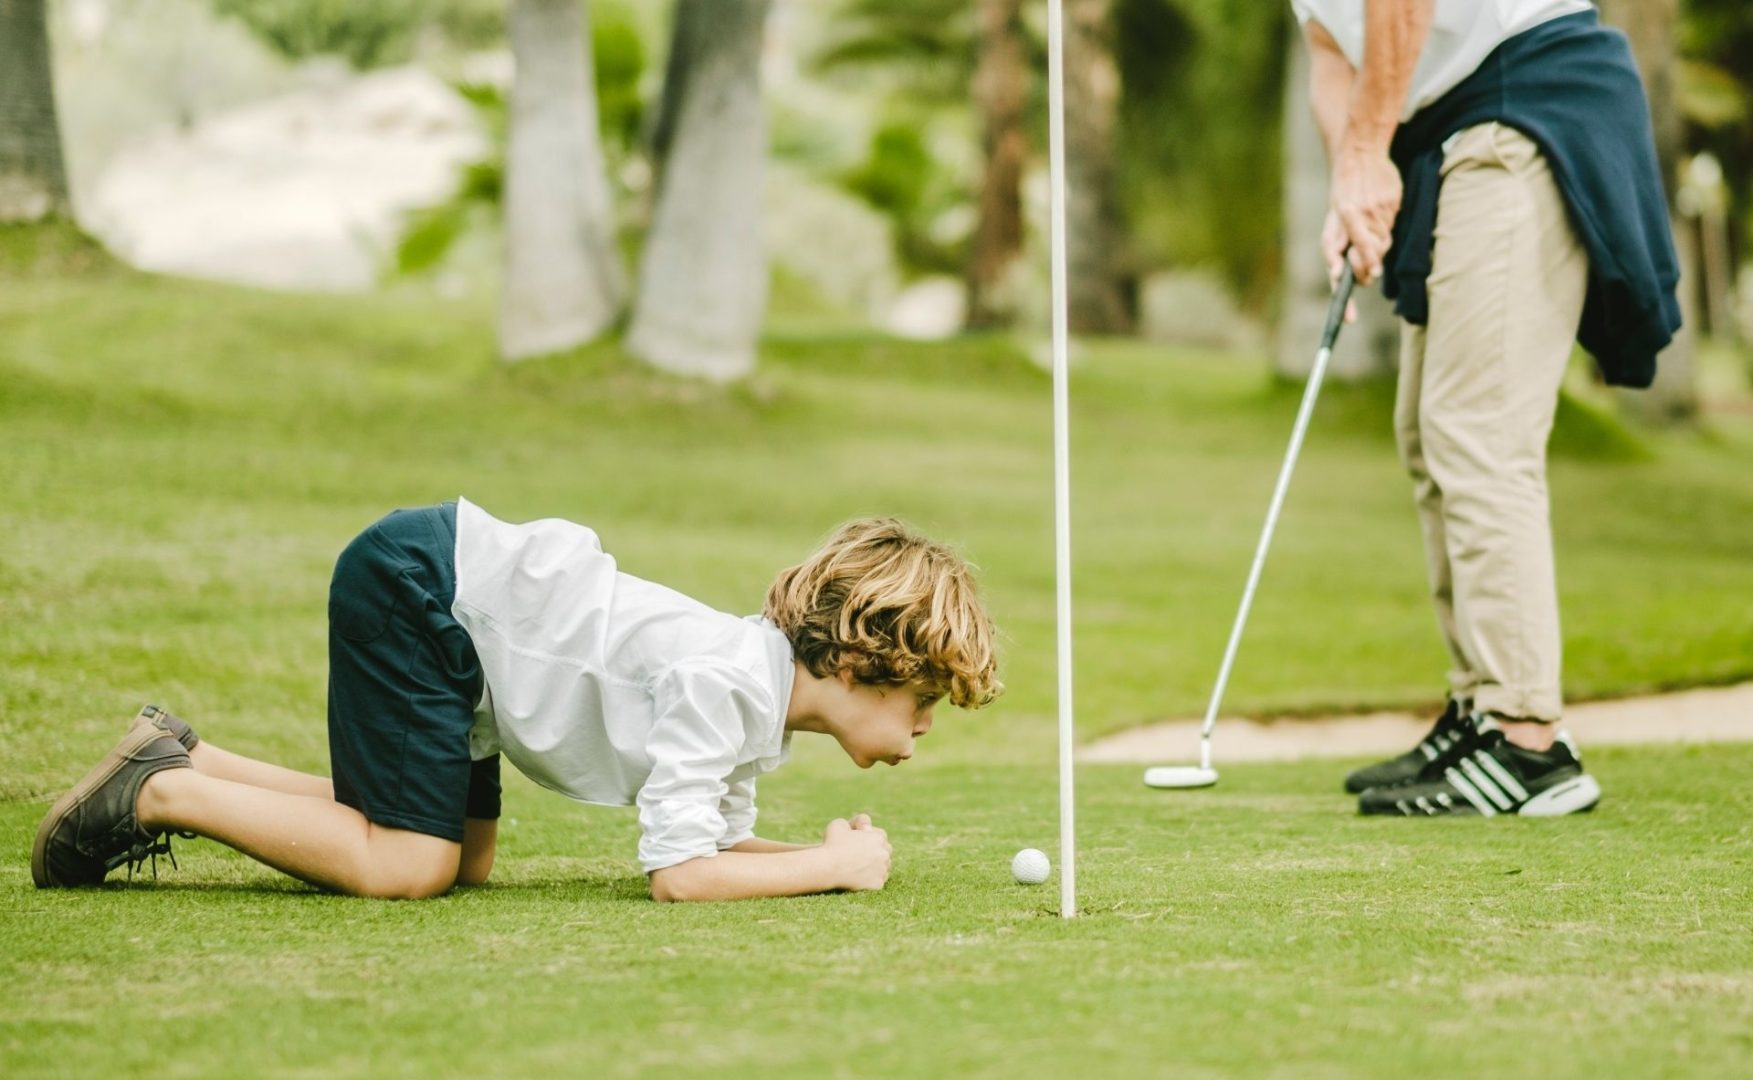 Kids love the Pitch & Putt